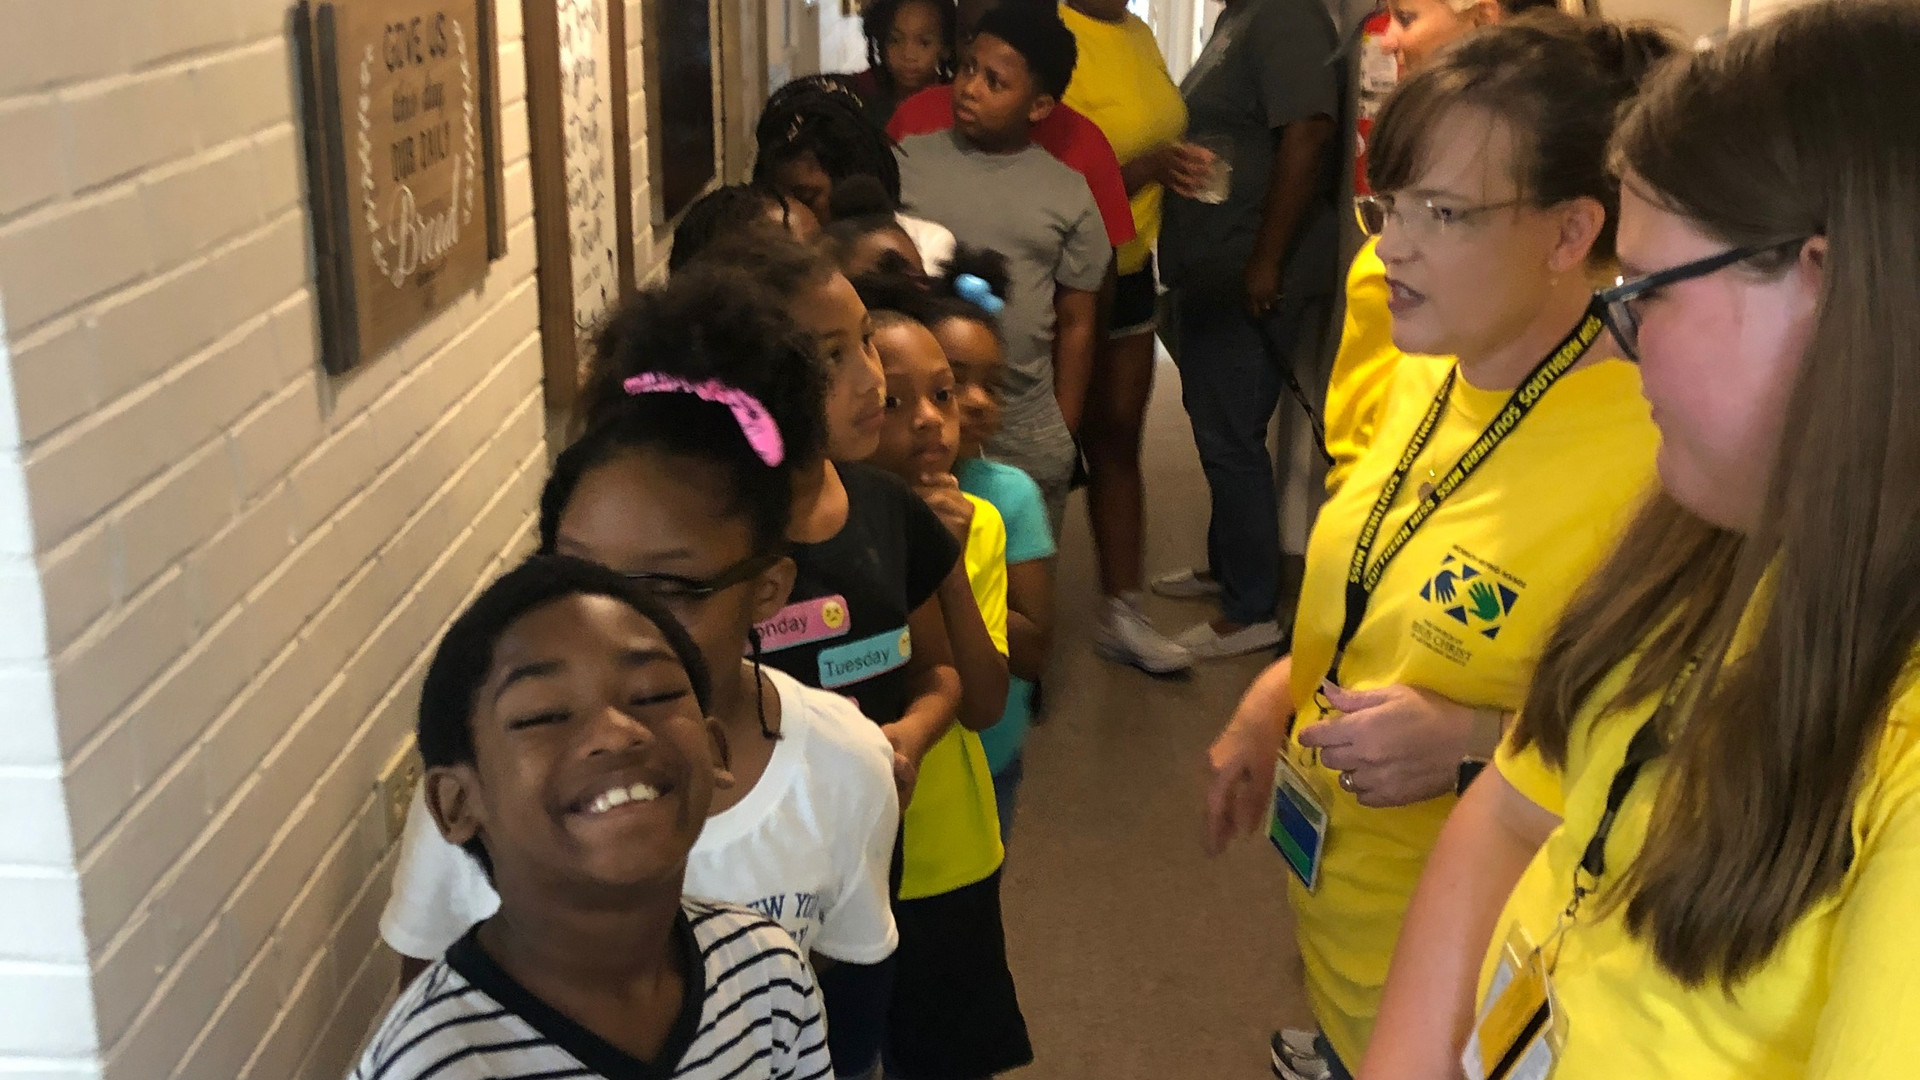 The kids from Boys & Girls Club were invited to the Give & Take Kitchen